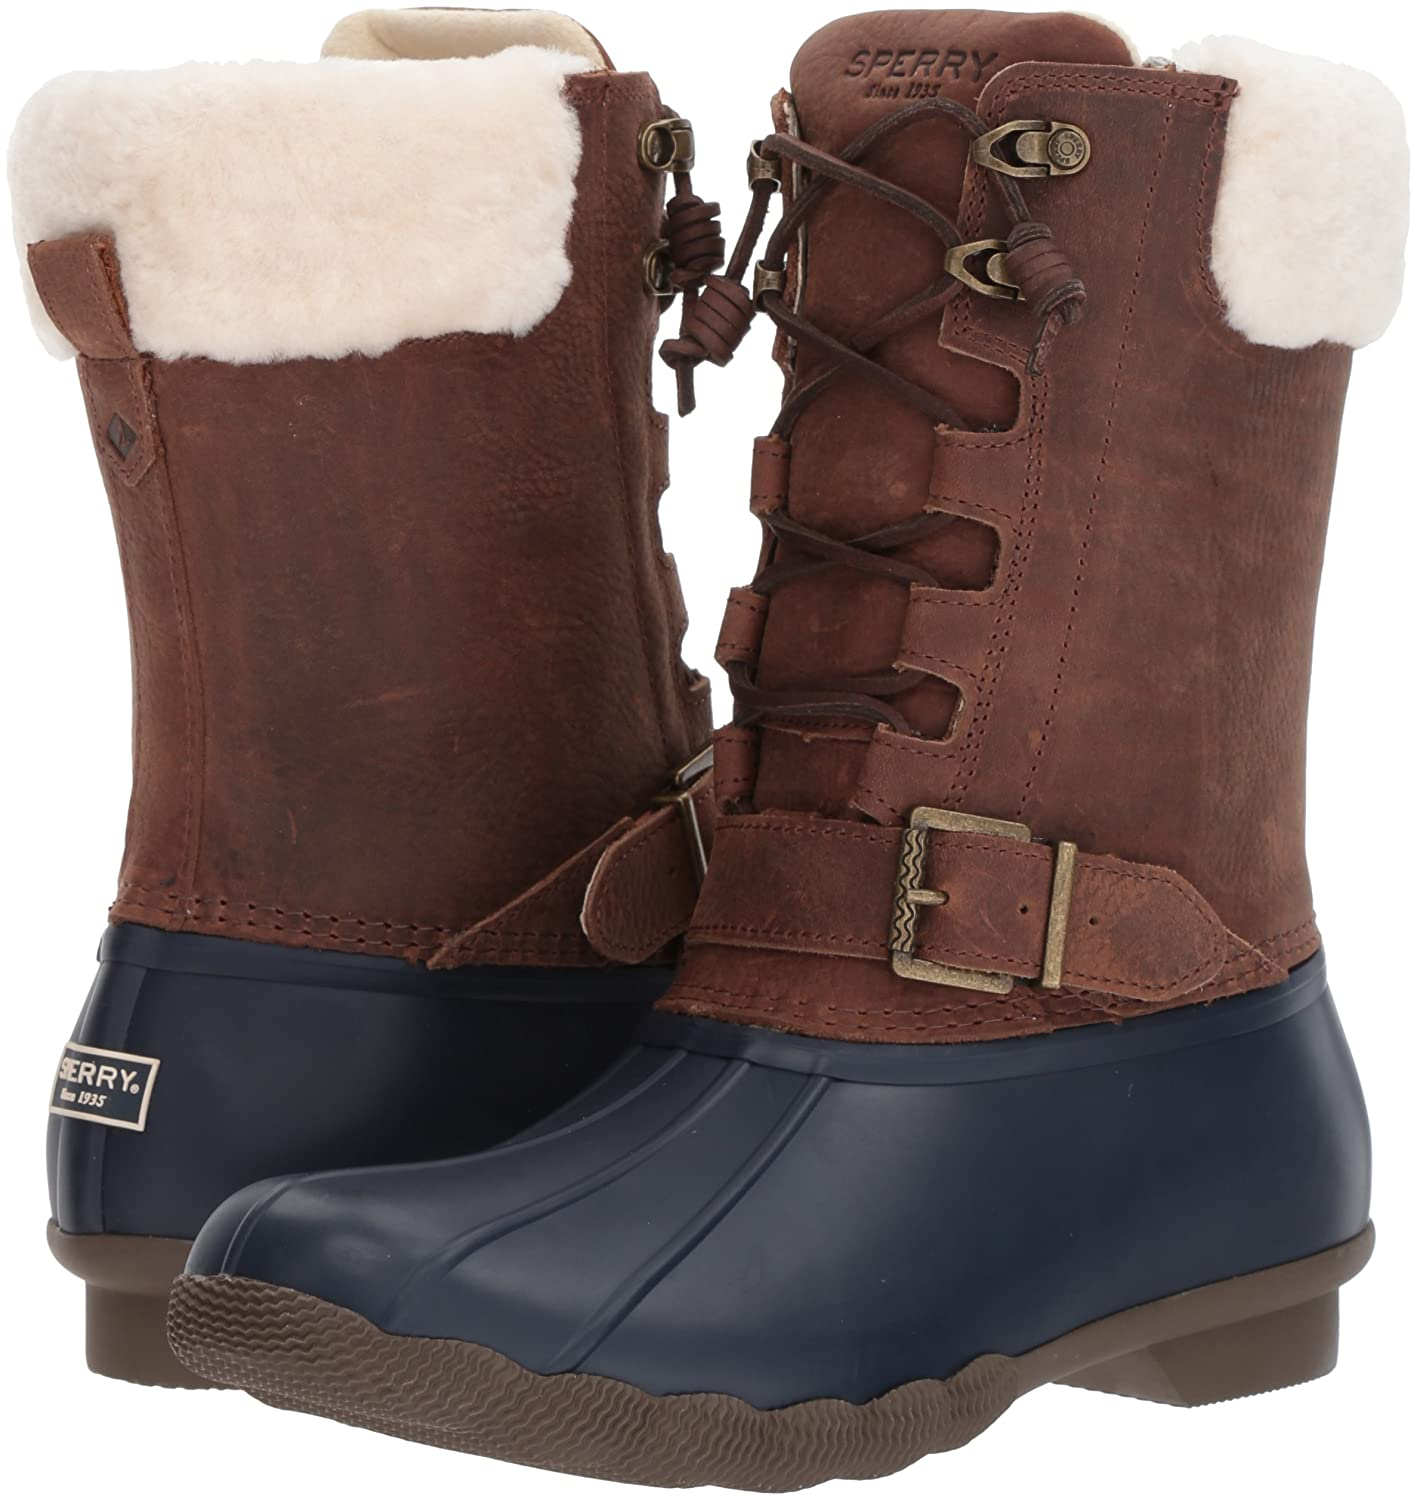 Sperry Top-Sider Women's Saltwater Misty Thinsulate Rain Boot B01N5HIXLY 11 B(M) US Navy/Brown